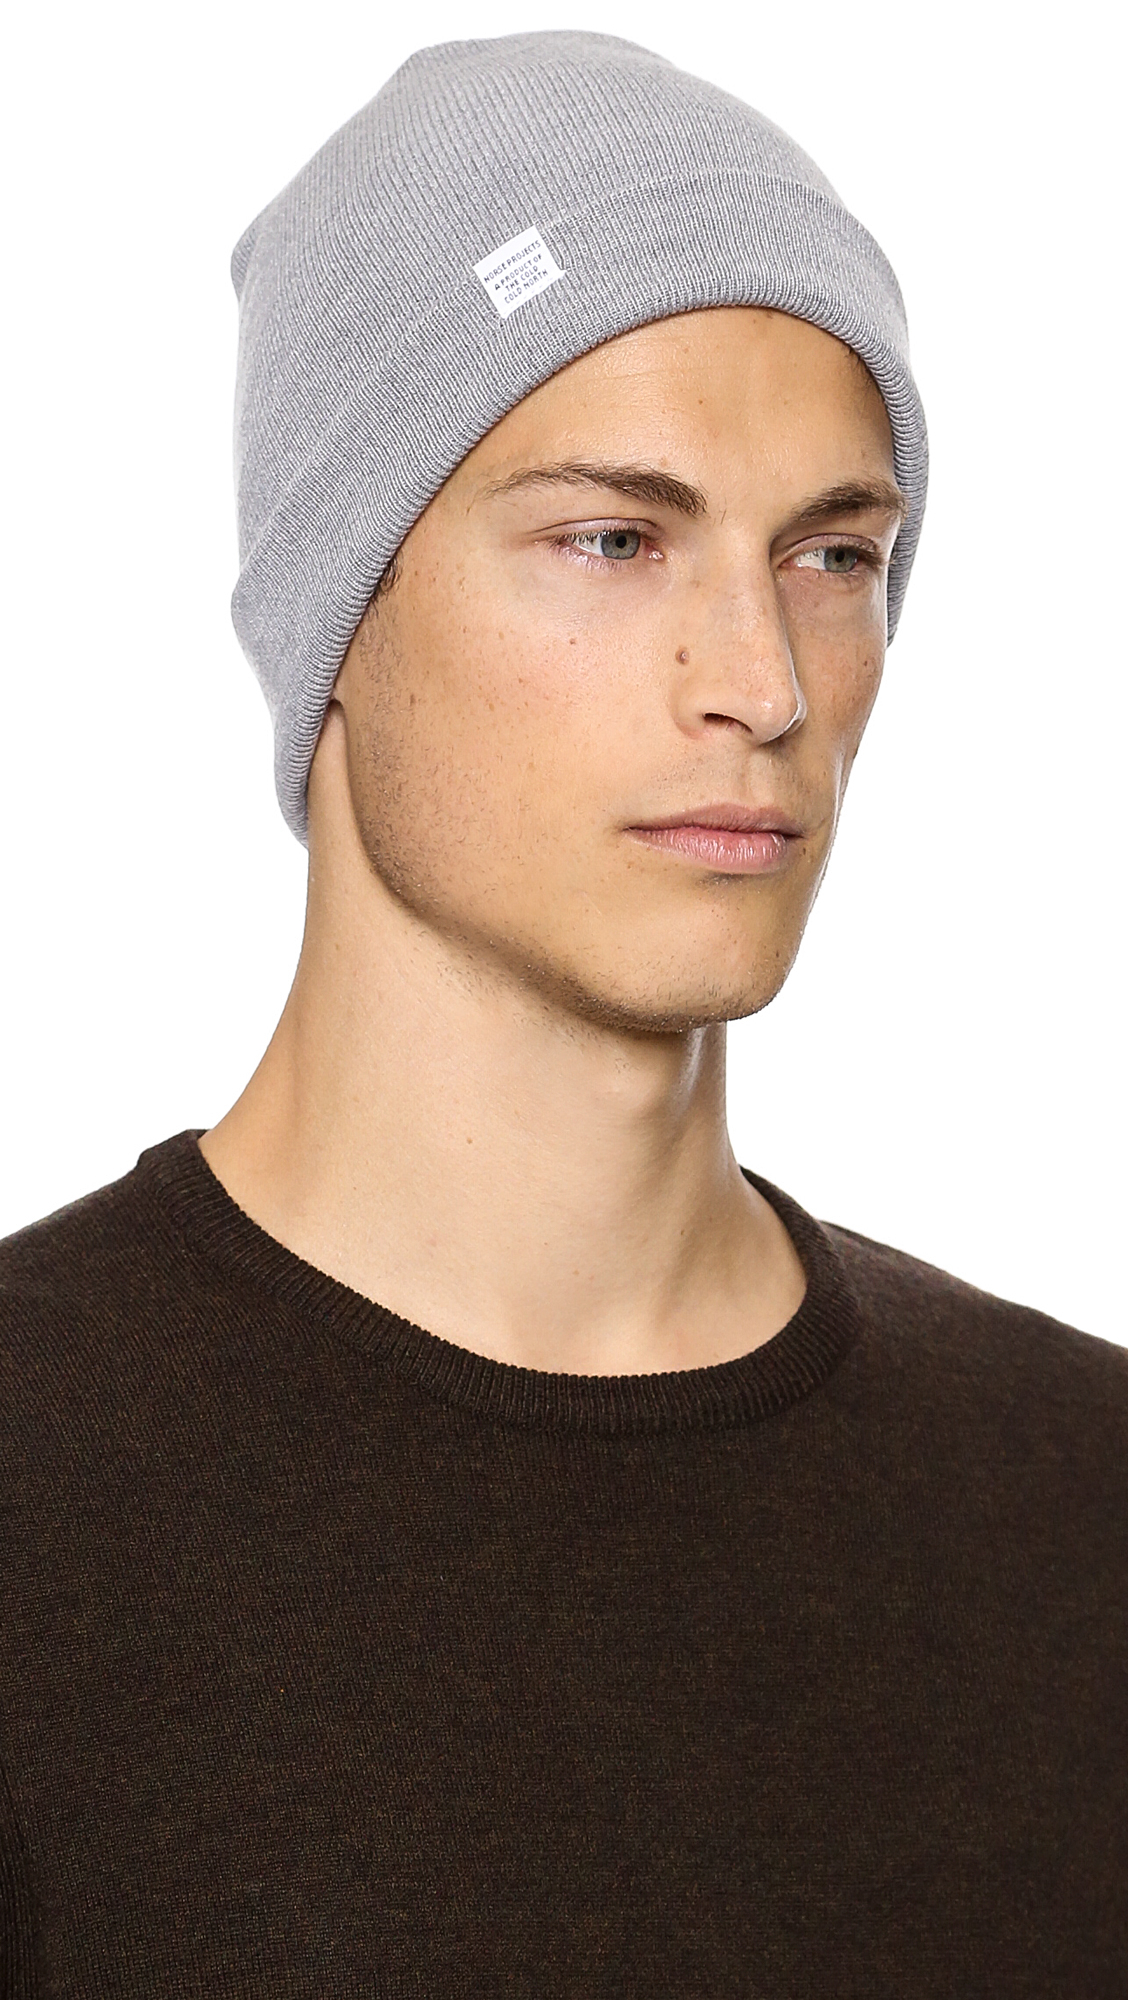 Norse Projects Norse Top Beanie in Gray for Men - Lyst 63cd7432799